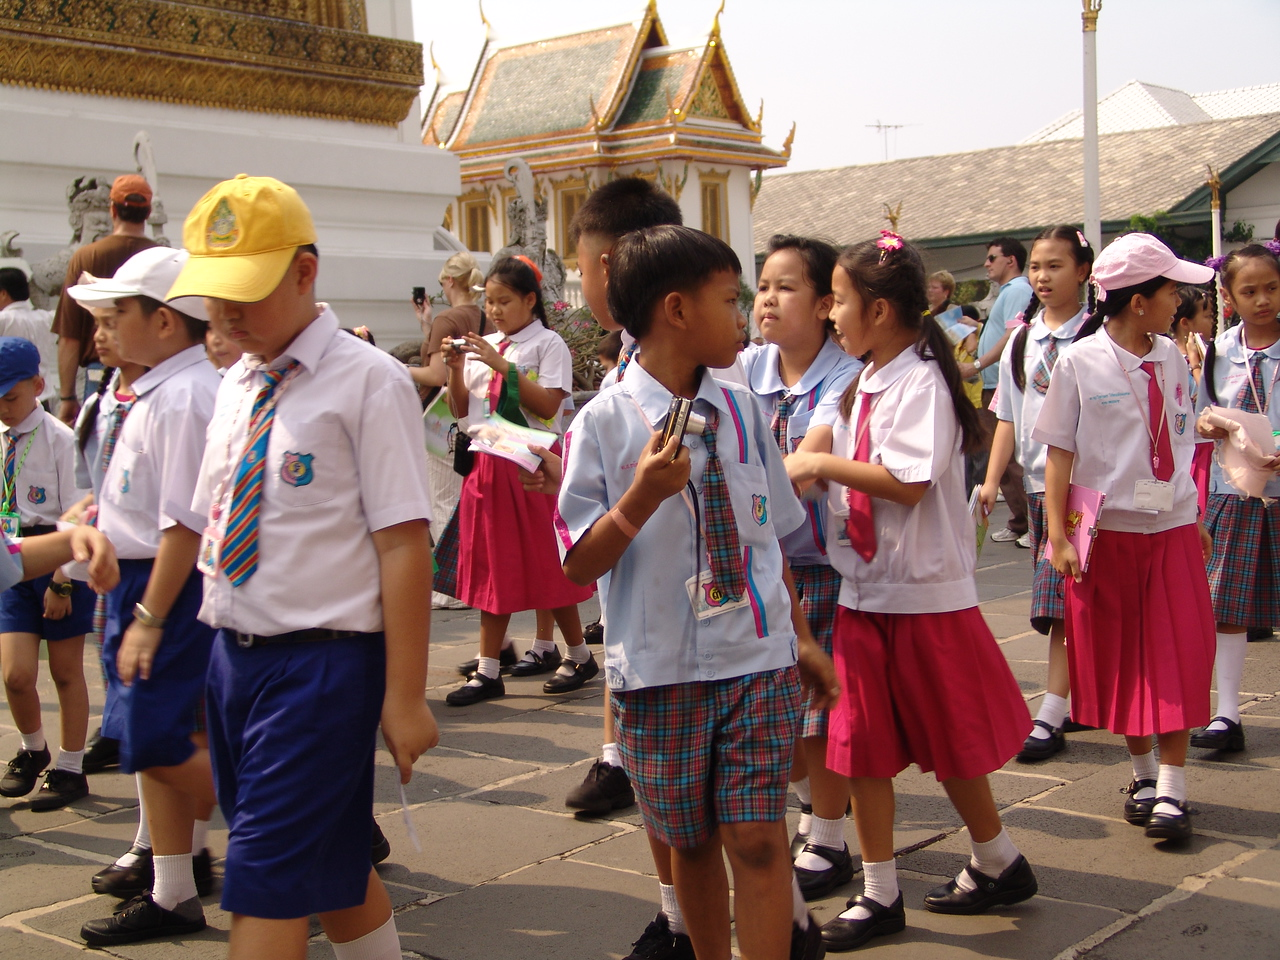 A school field trip to the Grand Palace